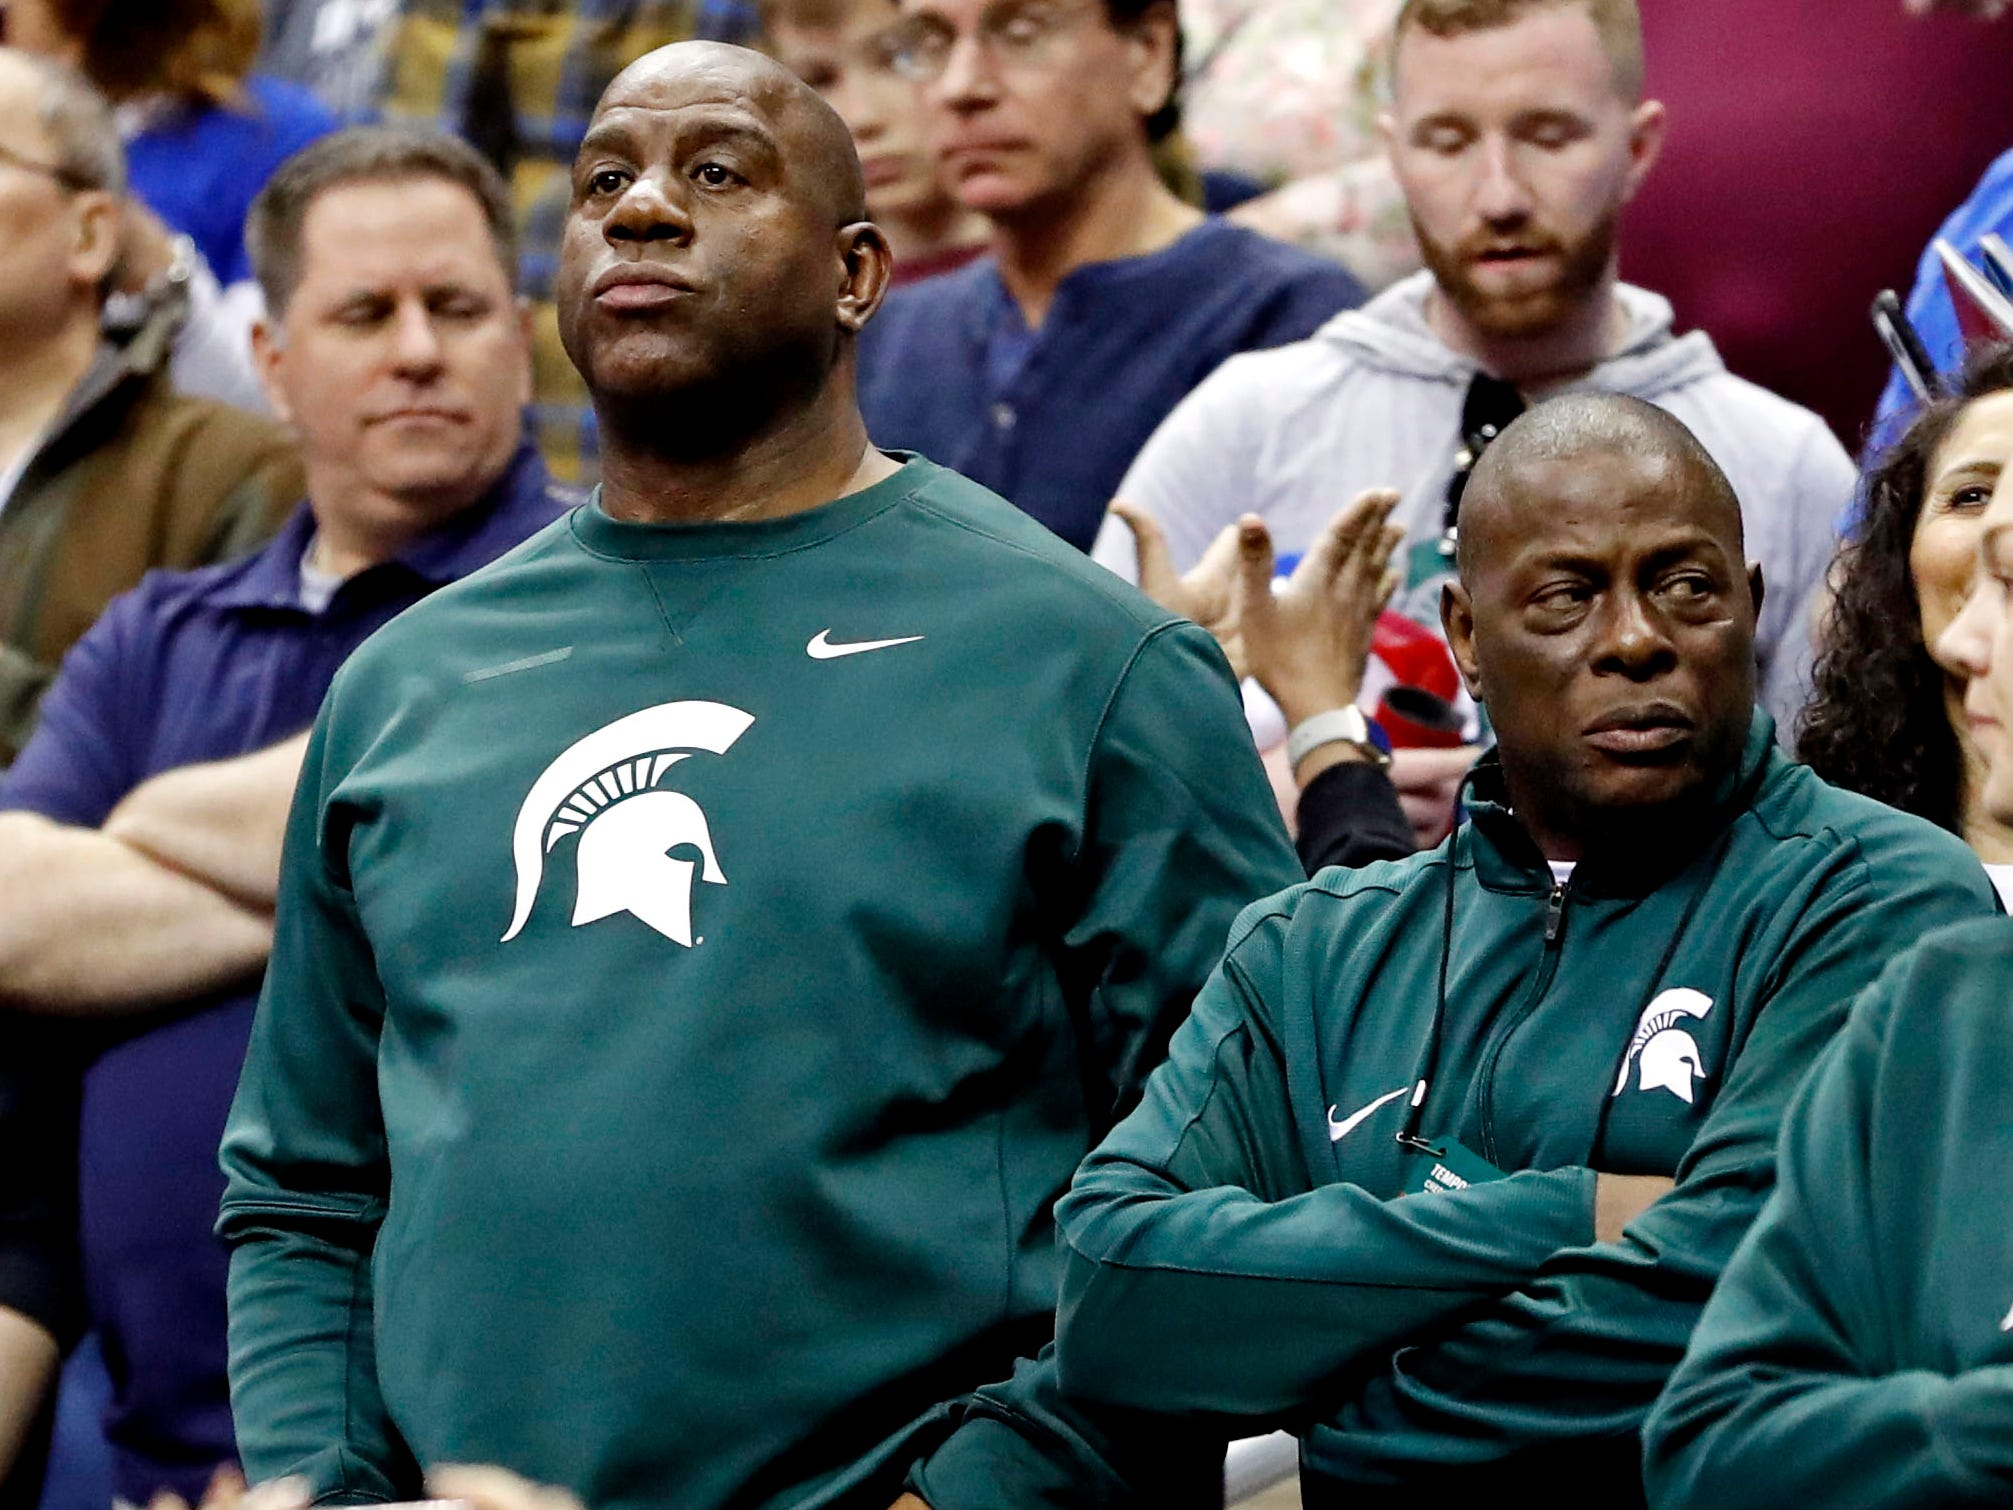 Michigan State Spartans former player Magic Johnson watches during the first half in the championship game of the east regional of the 2019 NCAA Tournament against the Duke Blue Devils at Capital One Arena.